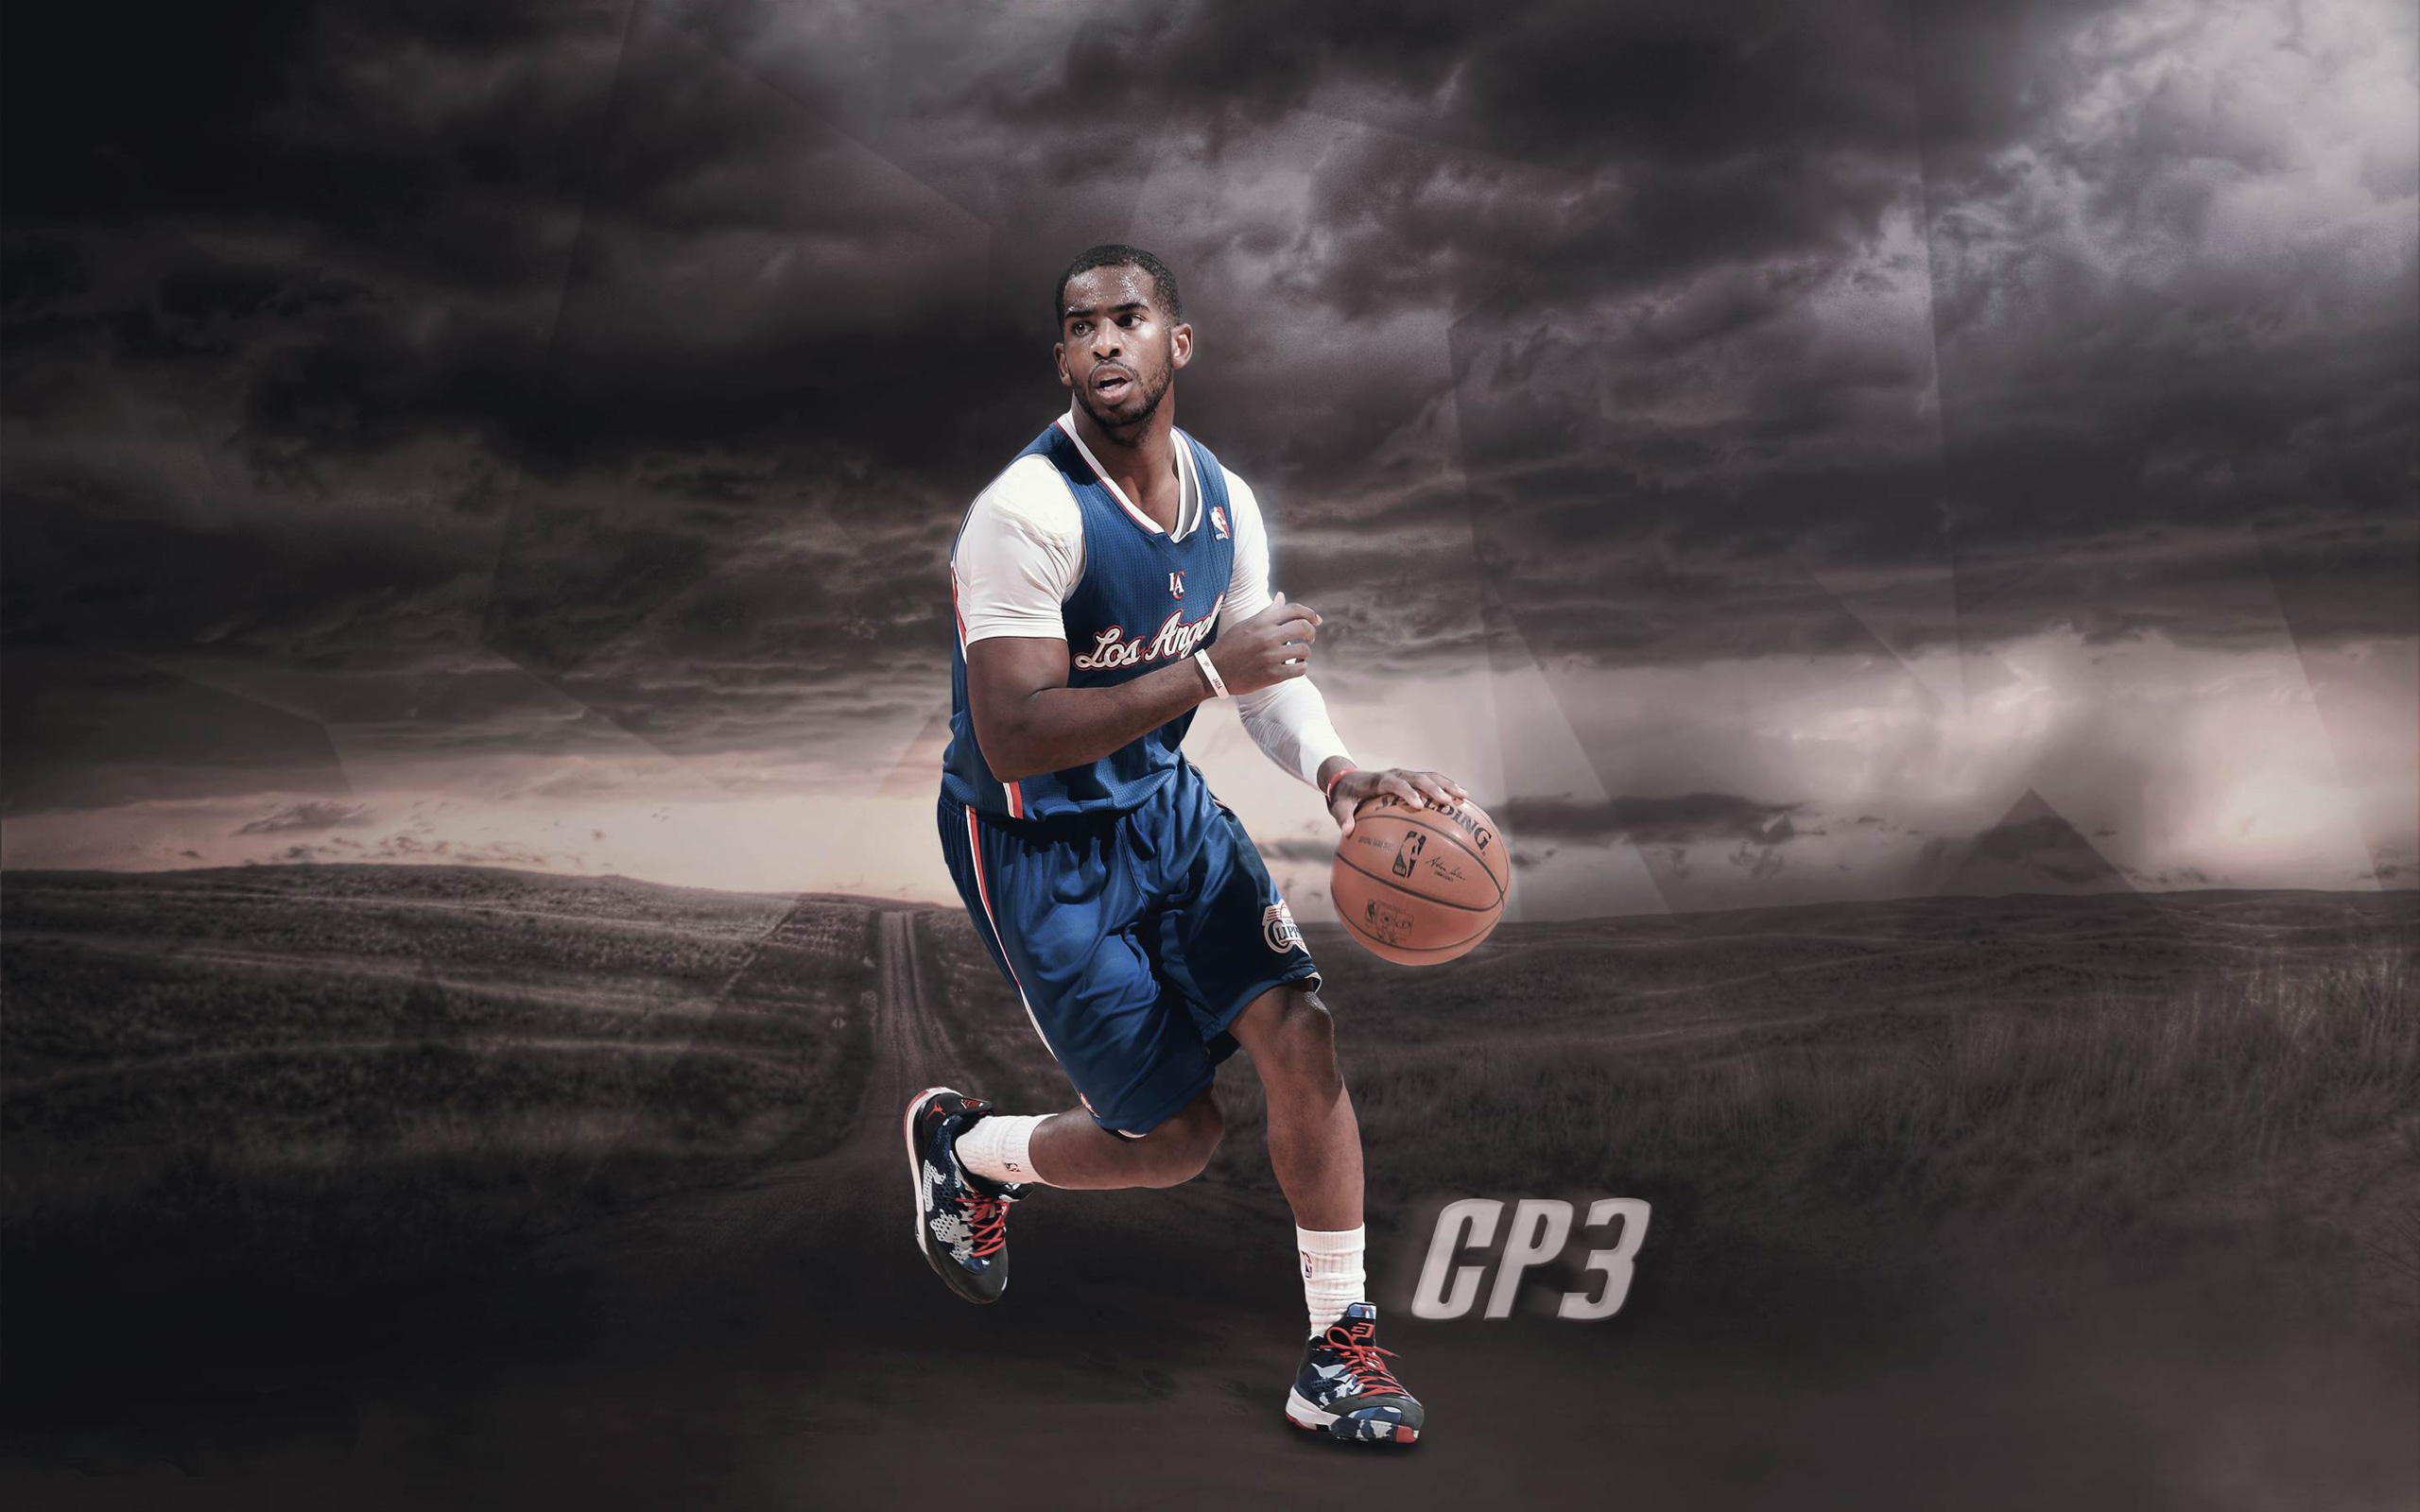 CP3 LA Clippers 25601600 Wallpaper Basketball Wallpapers at 2560x1600